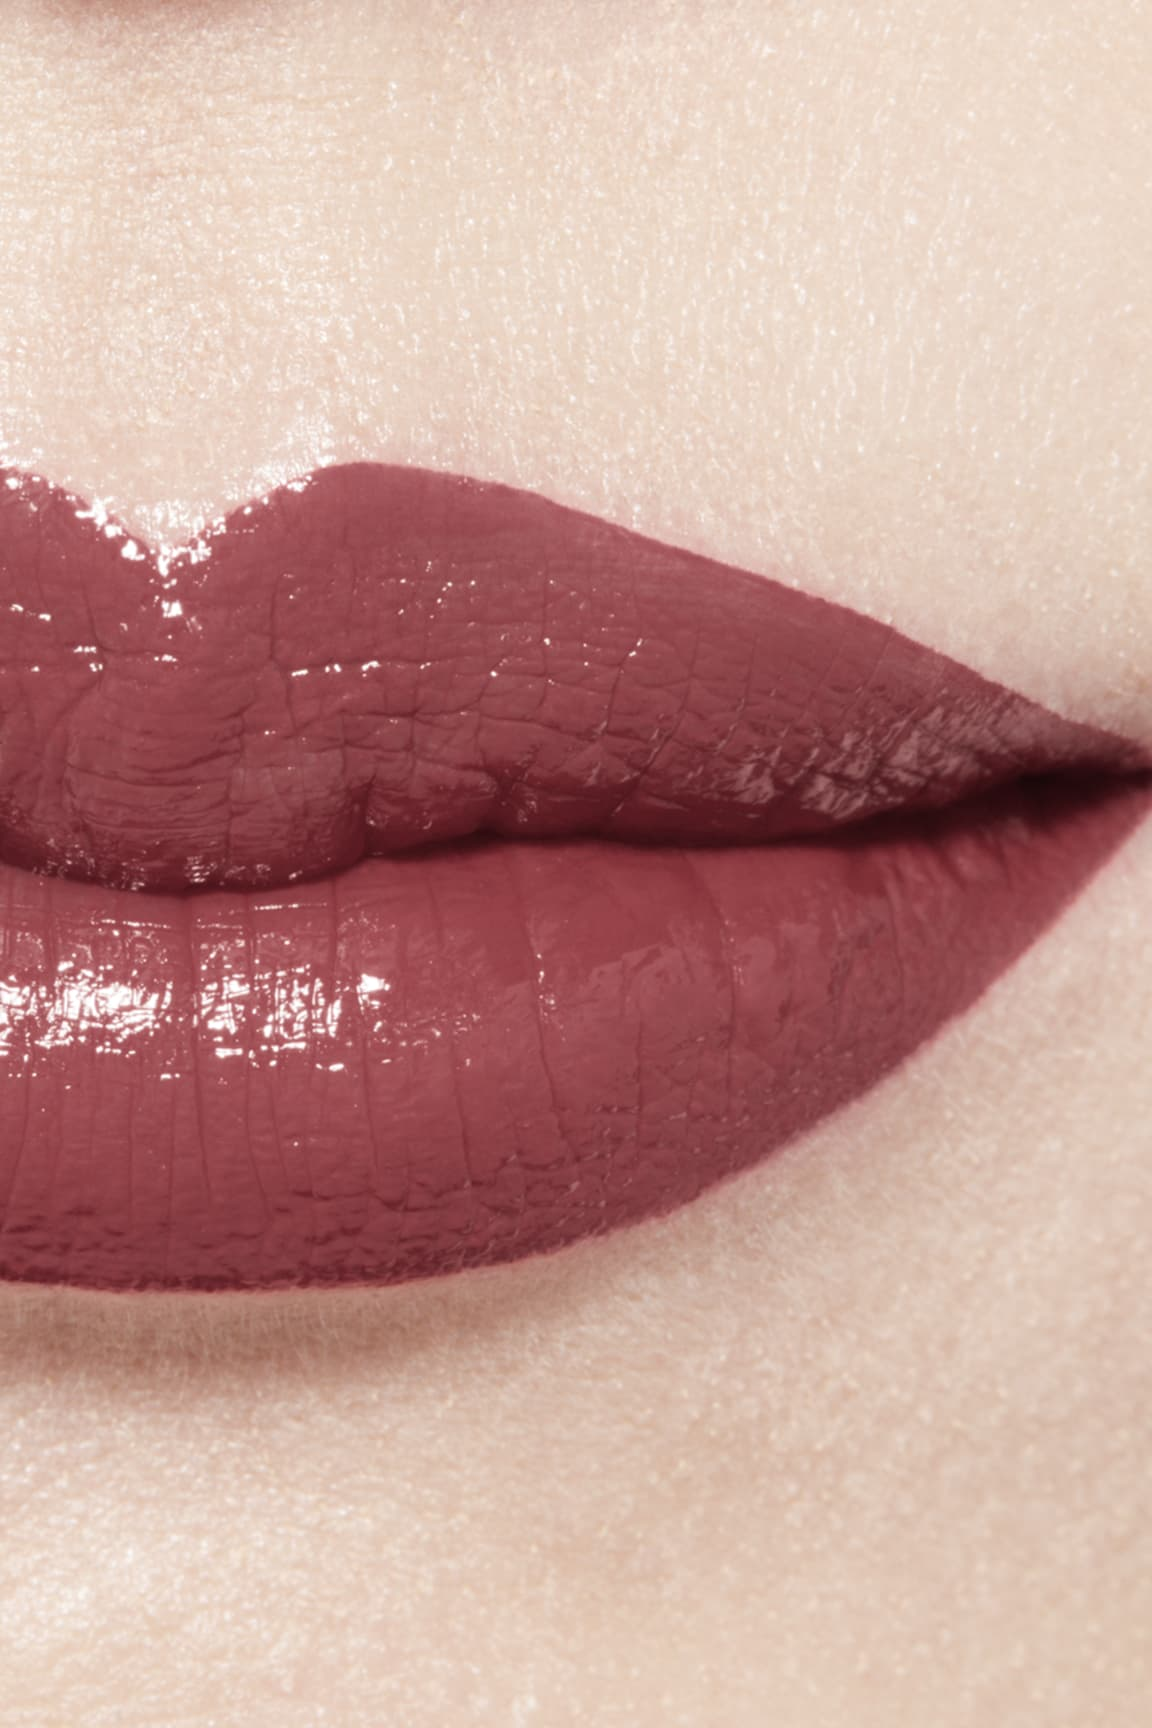 Application makeup visual 1 - ROUGE COCO BLOOM 118 - RADIANT